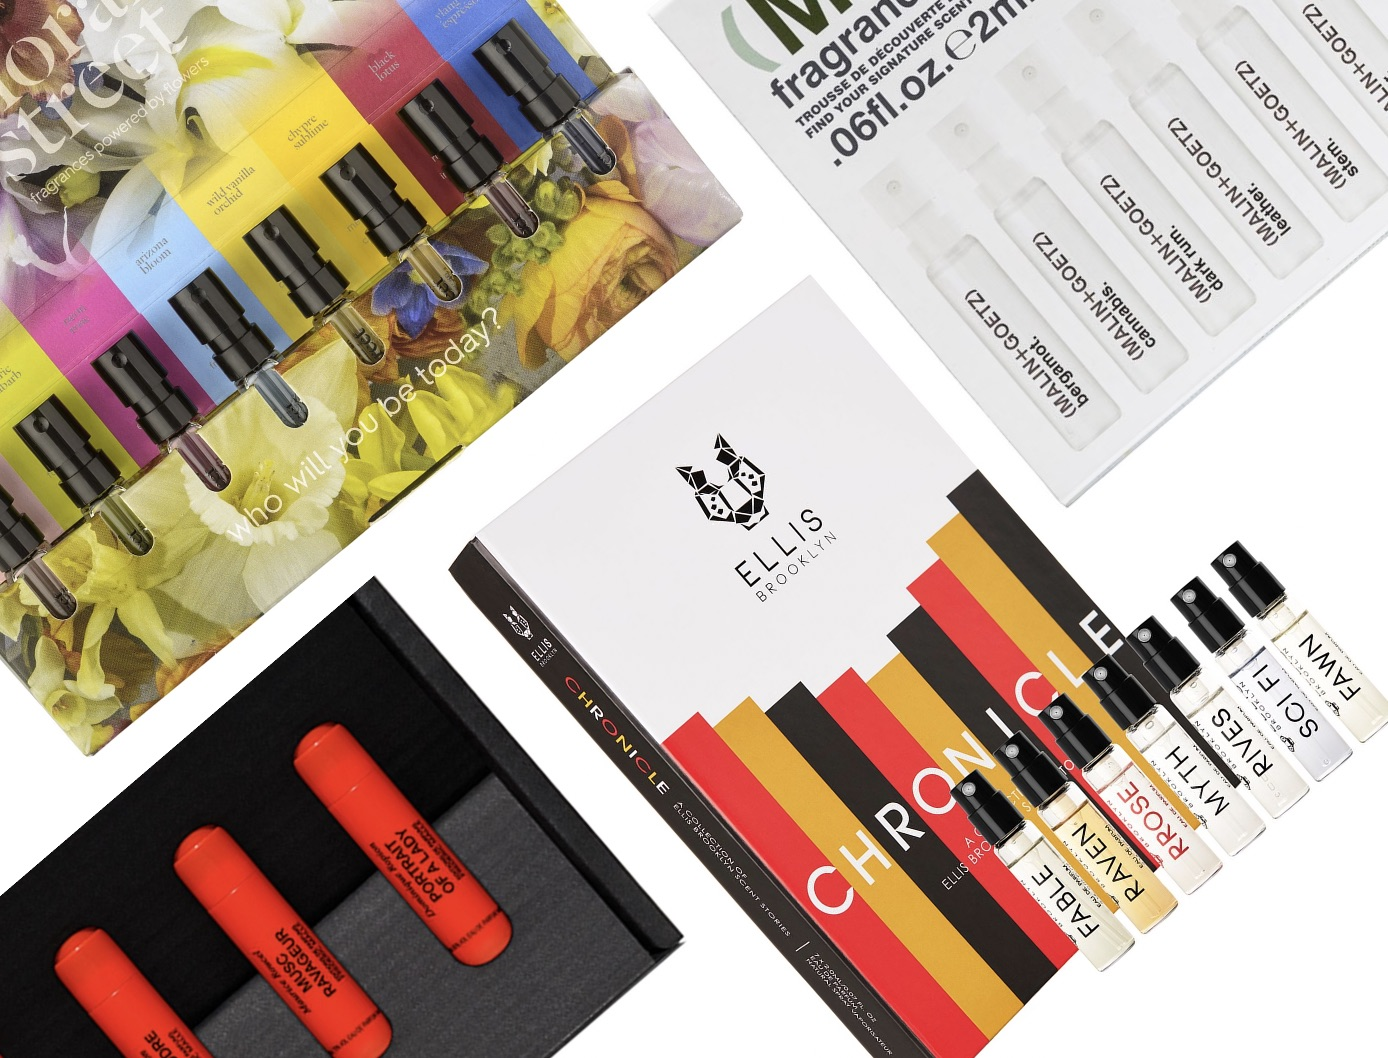 fragrance discovery sets